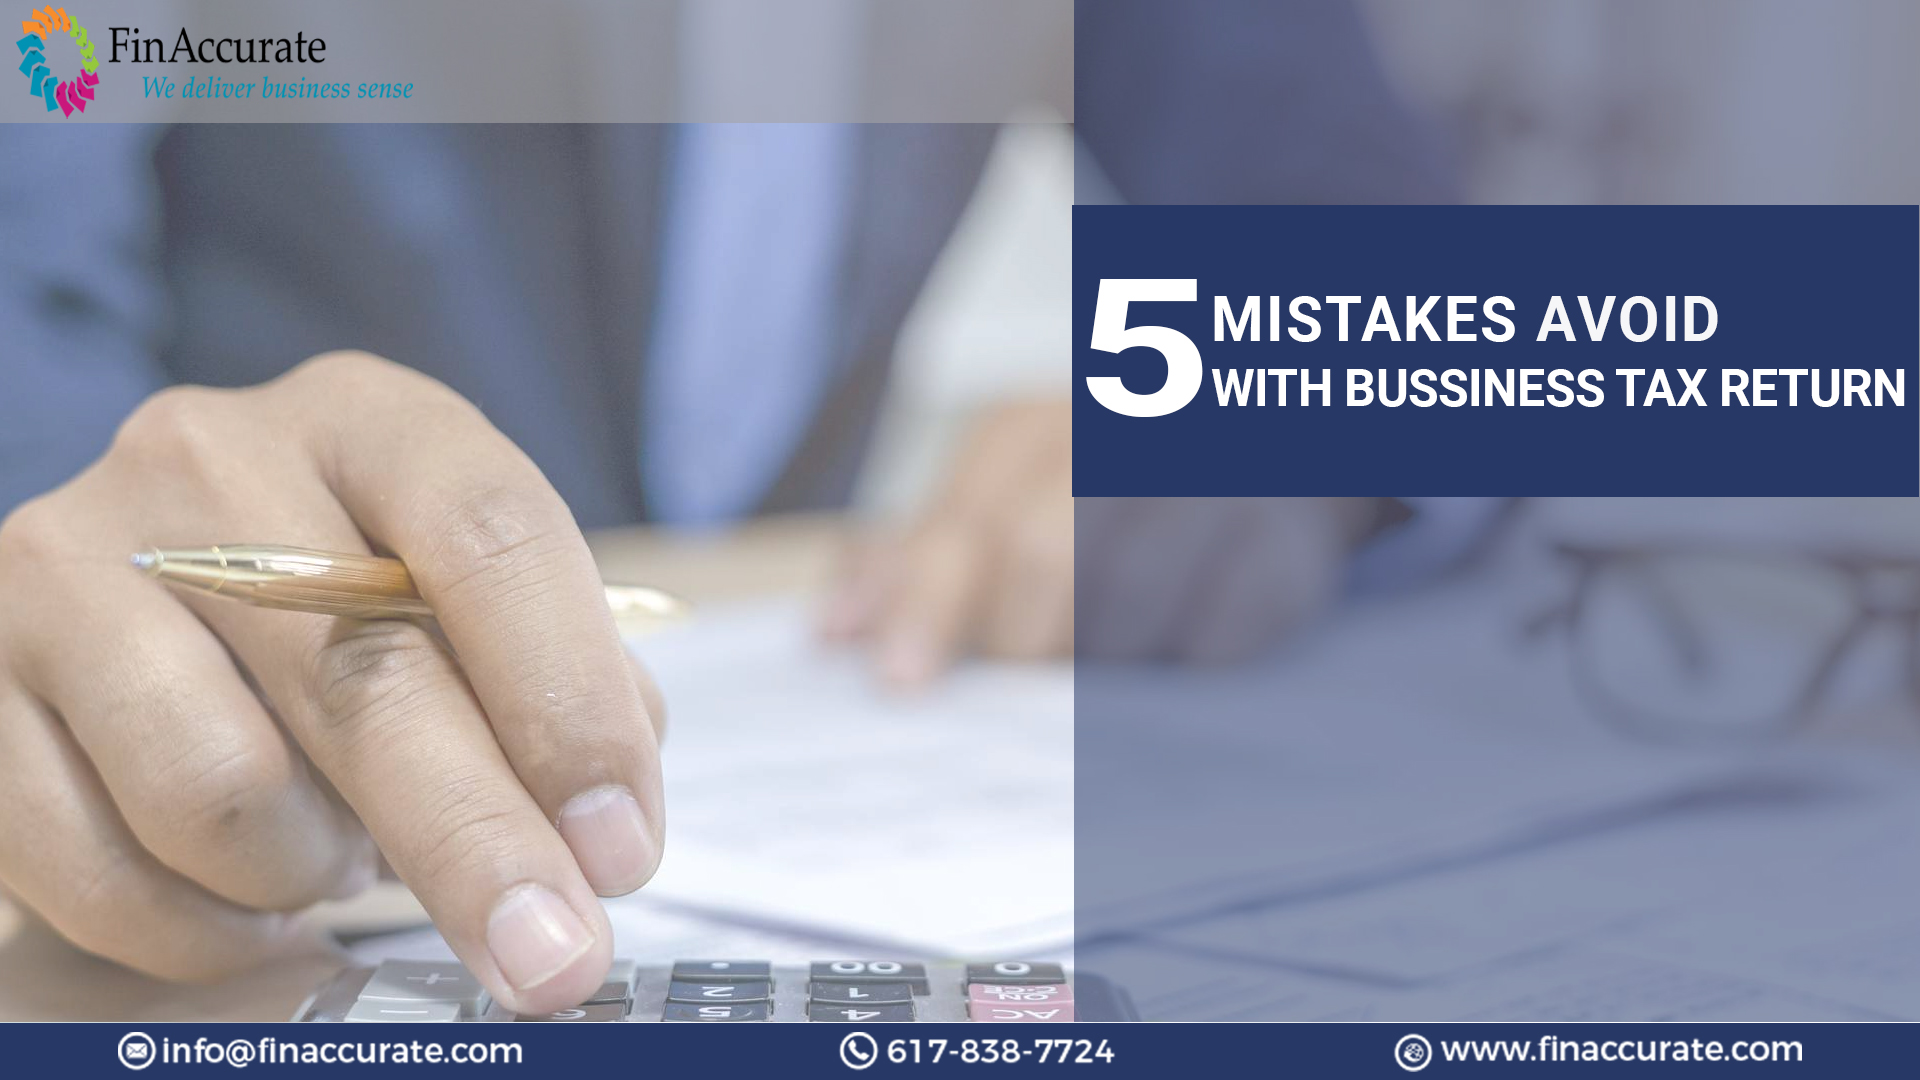 Small Business Tax Returns: 5 Mistakes to Avoid As a Business Owner